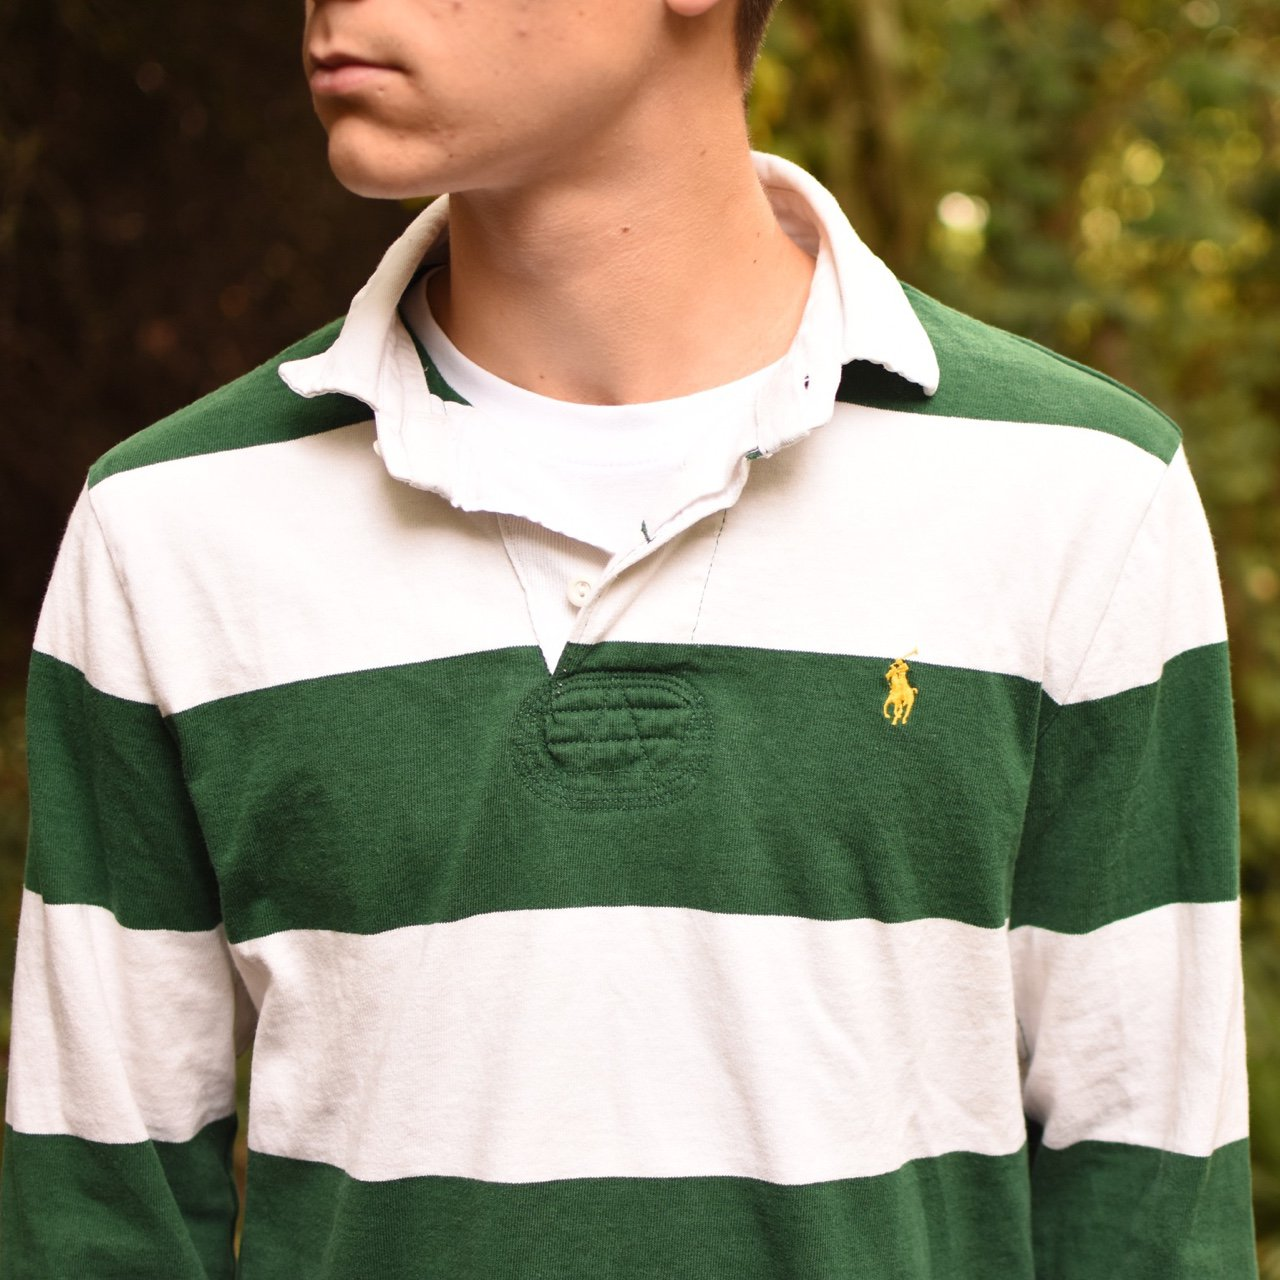 b3583981 @clemclothing. 2 years ago. Bedford, United Kingdom. Vintage green and  white striped Ralph Lauren rugby shirt.